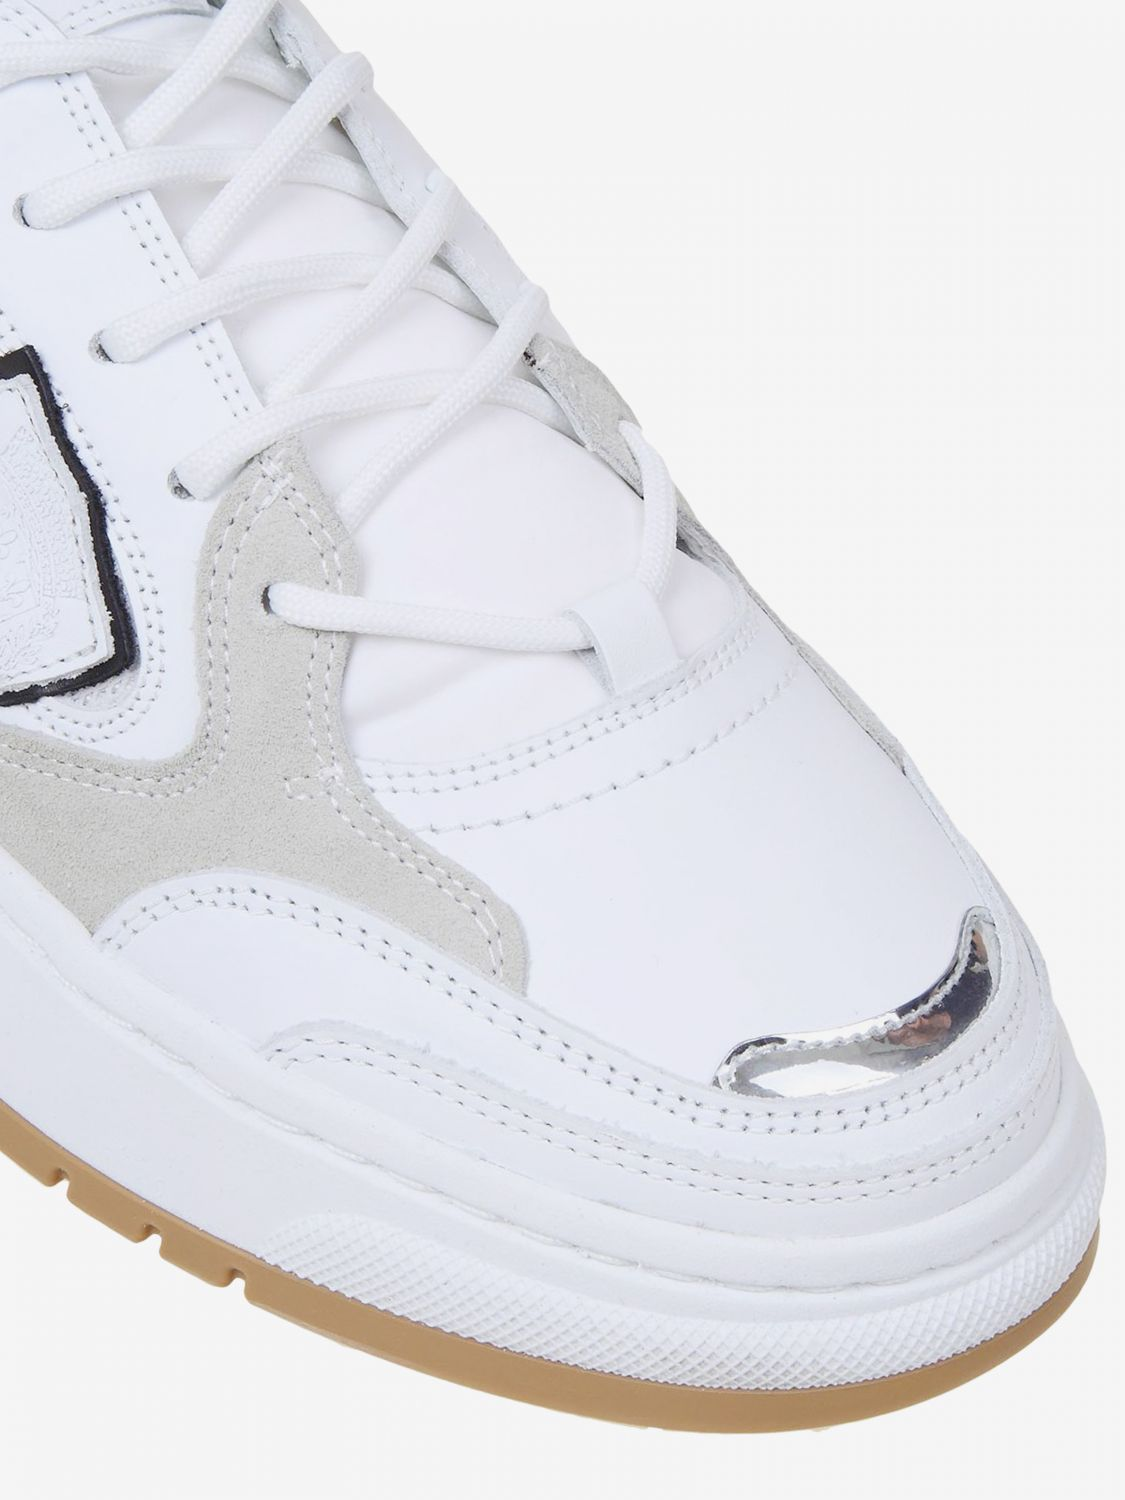 Baskets homme Philippe Model blanc 3